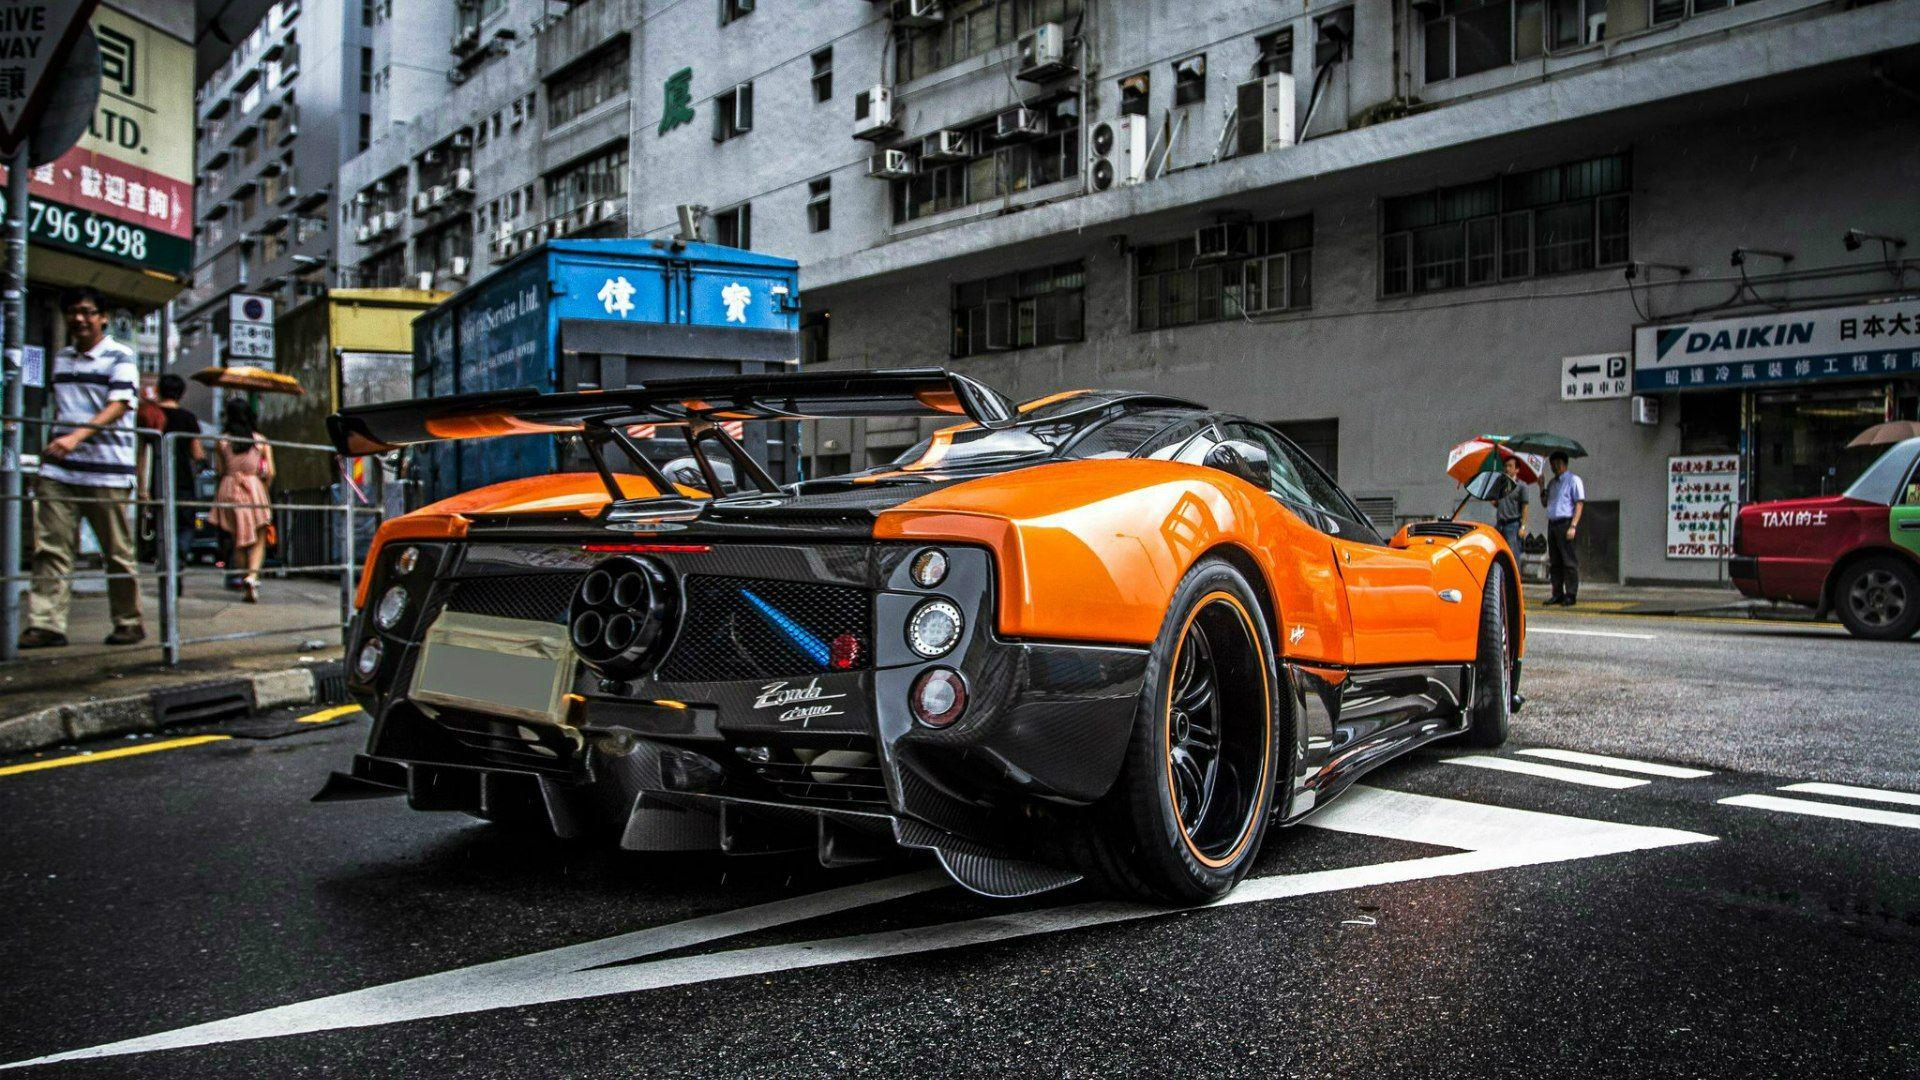 Pagani Zonda, HD Cars, 4k Wallpapers, Image, Backgrounds, Photos